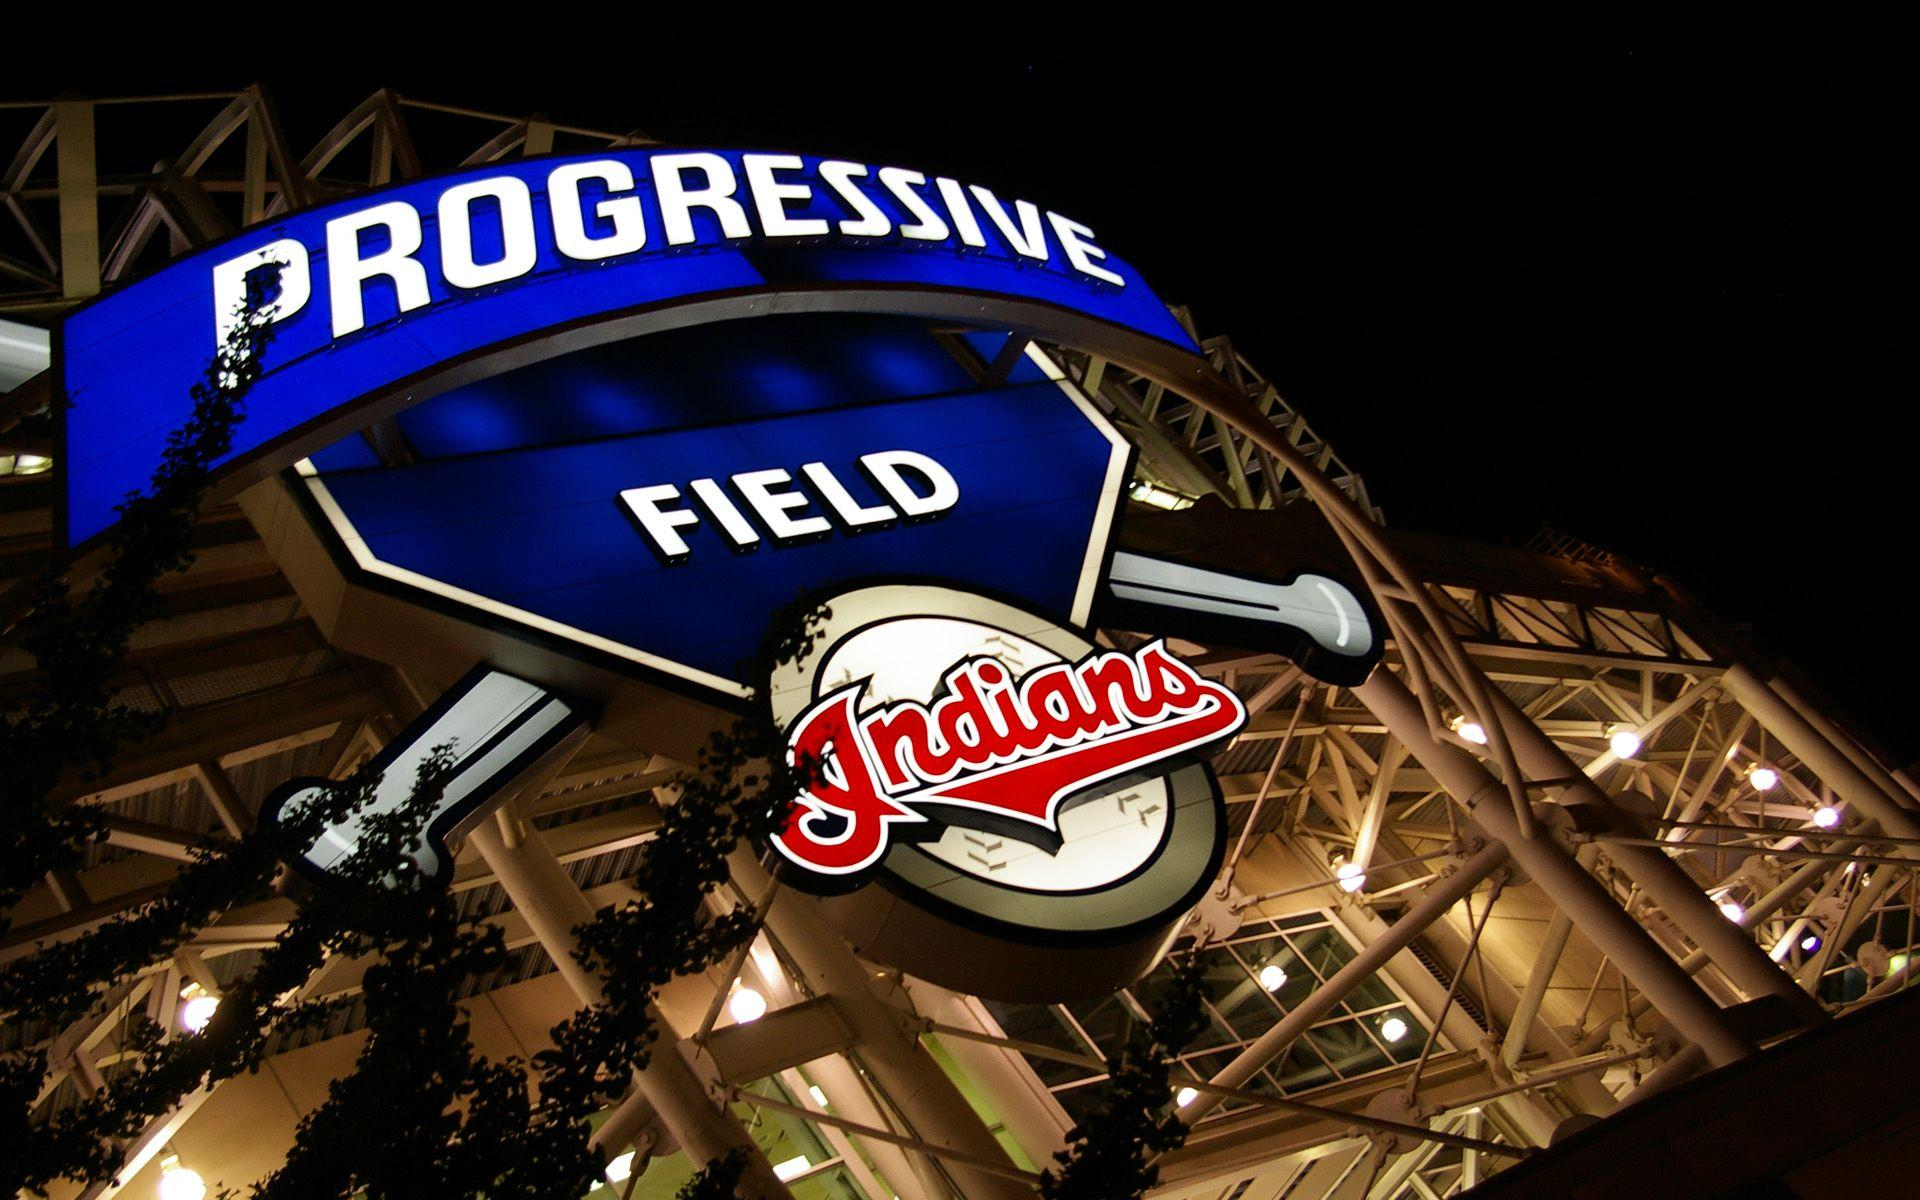 Cleveland Indians Baseball News, Schedule, Roster, Stats